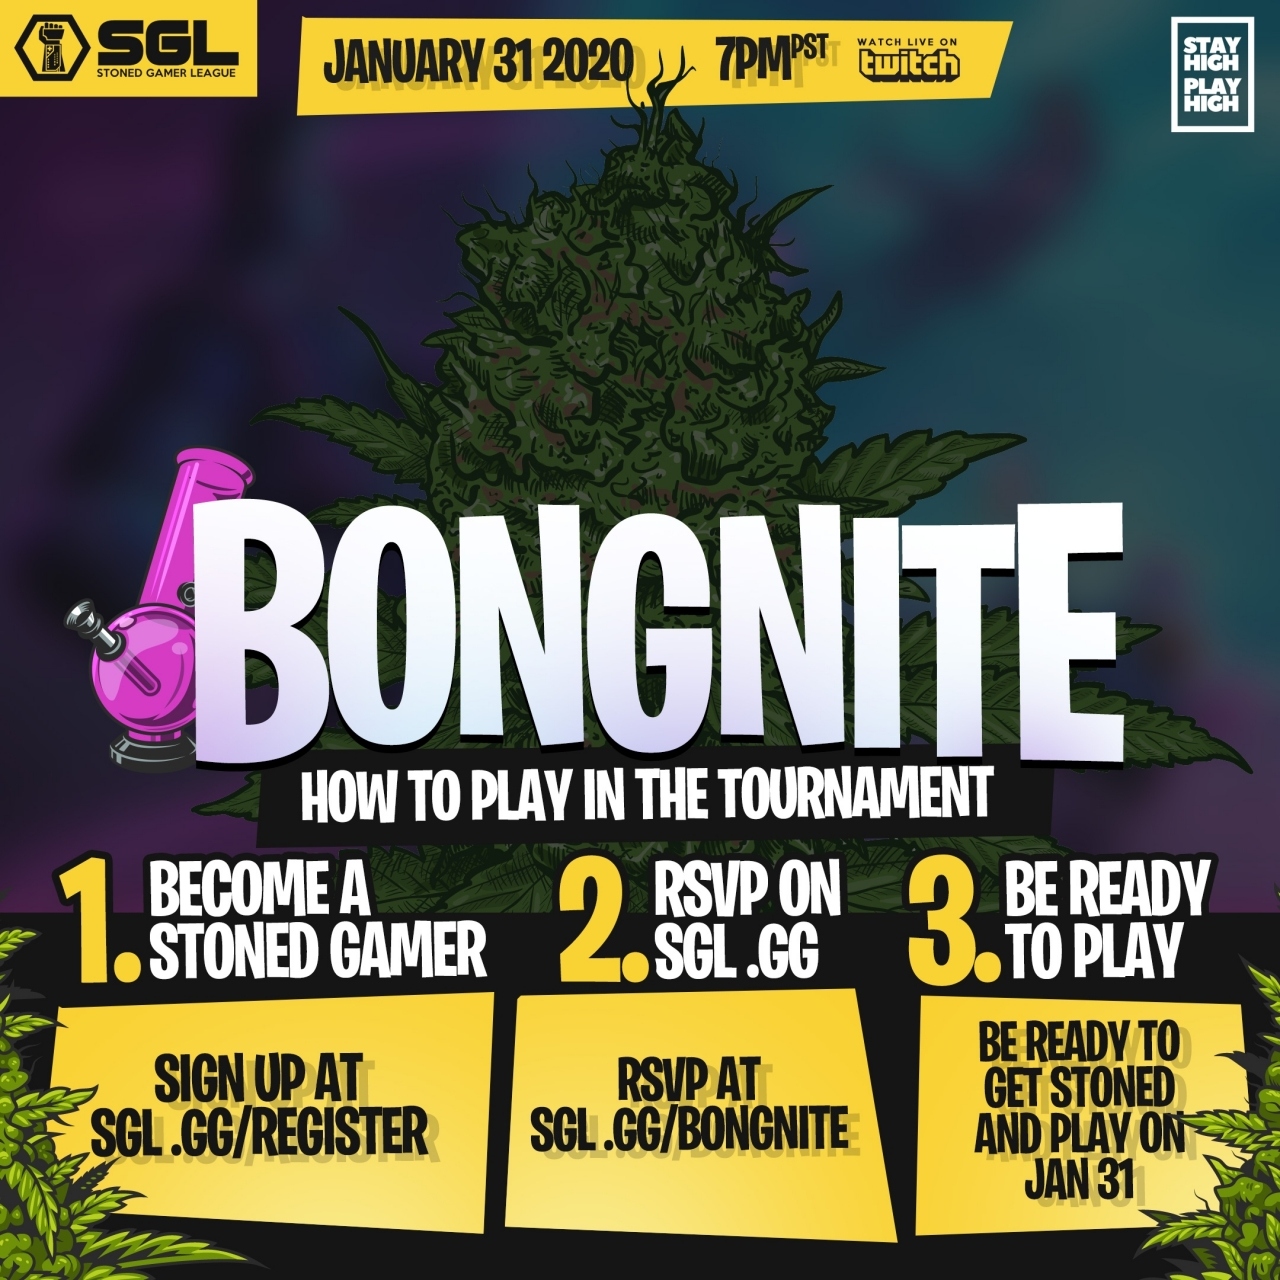 bongnite-sign-up